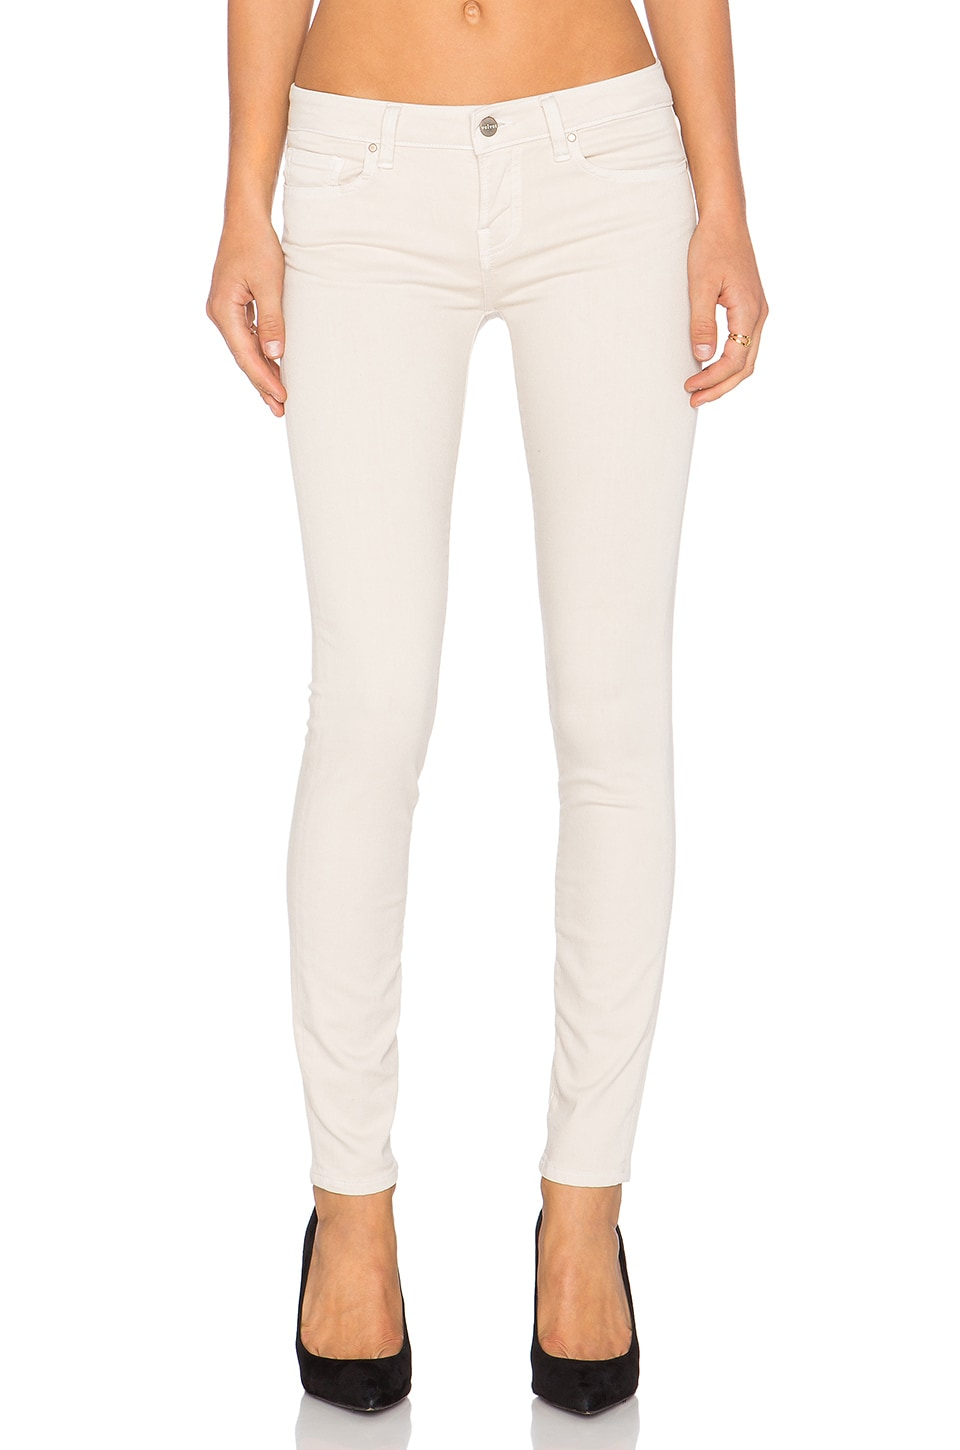 Velvet by Graham & Spencer Toni Skinny in Oatmeal